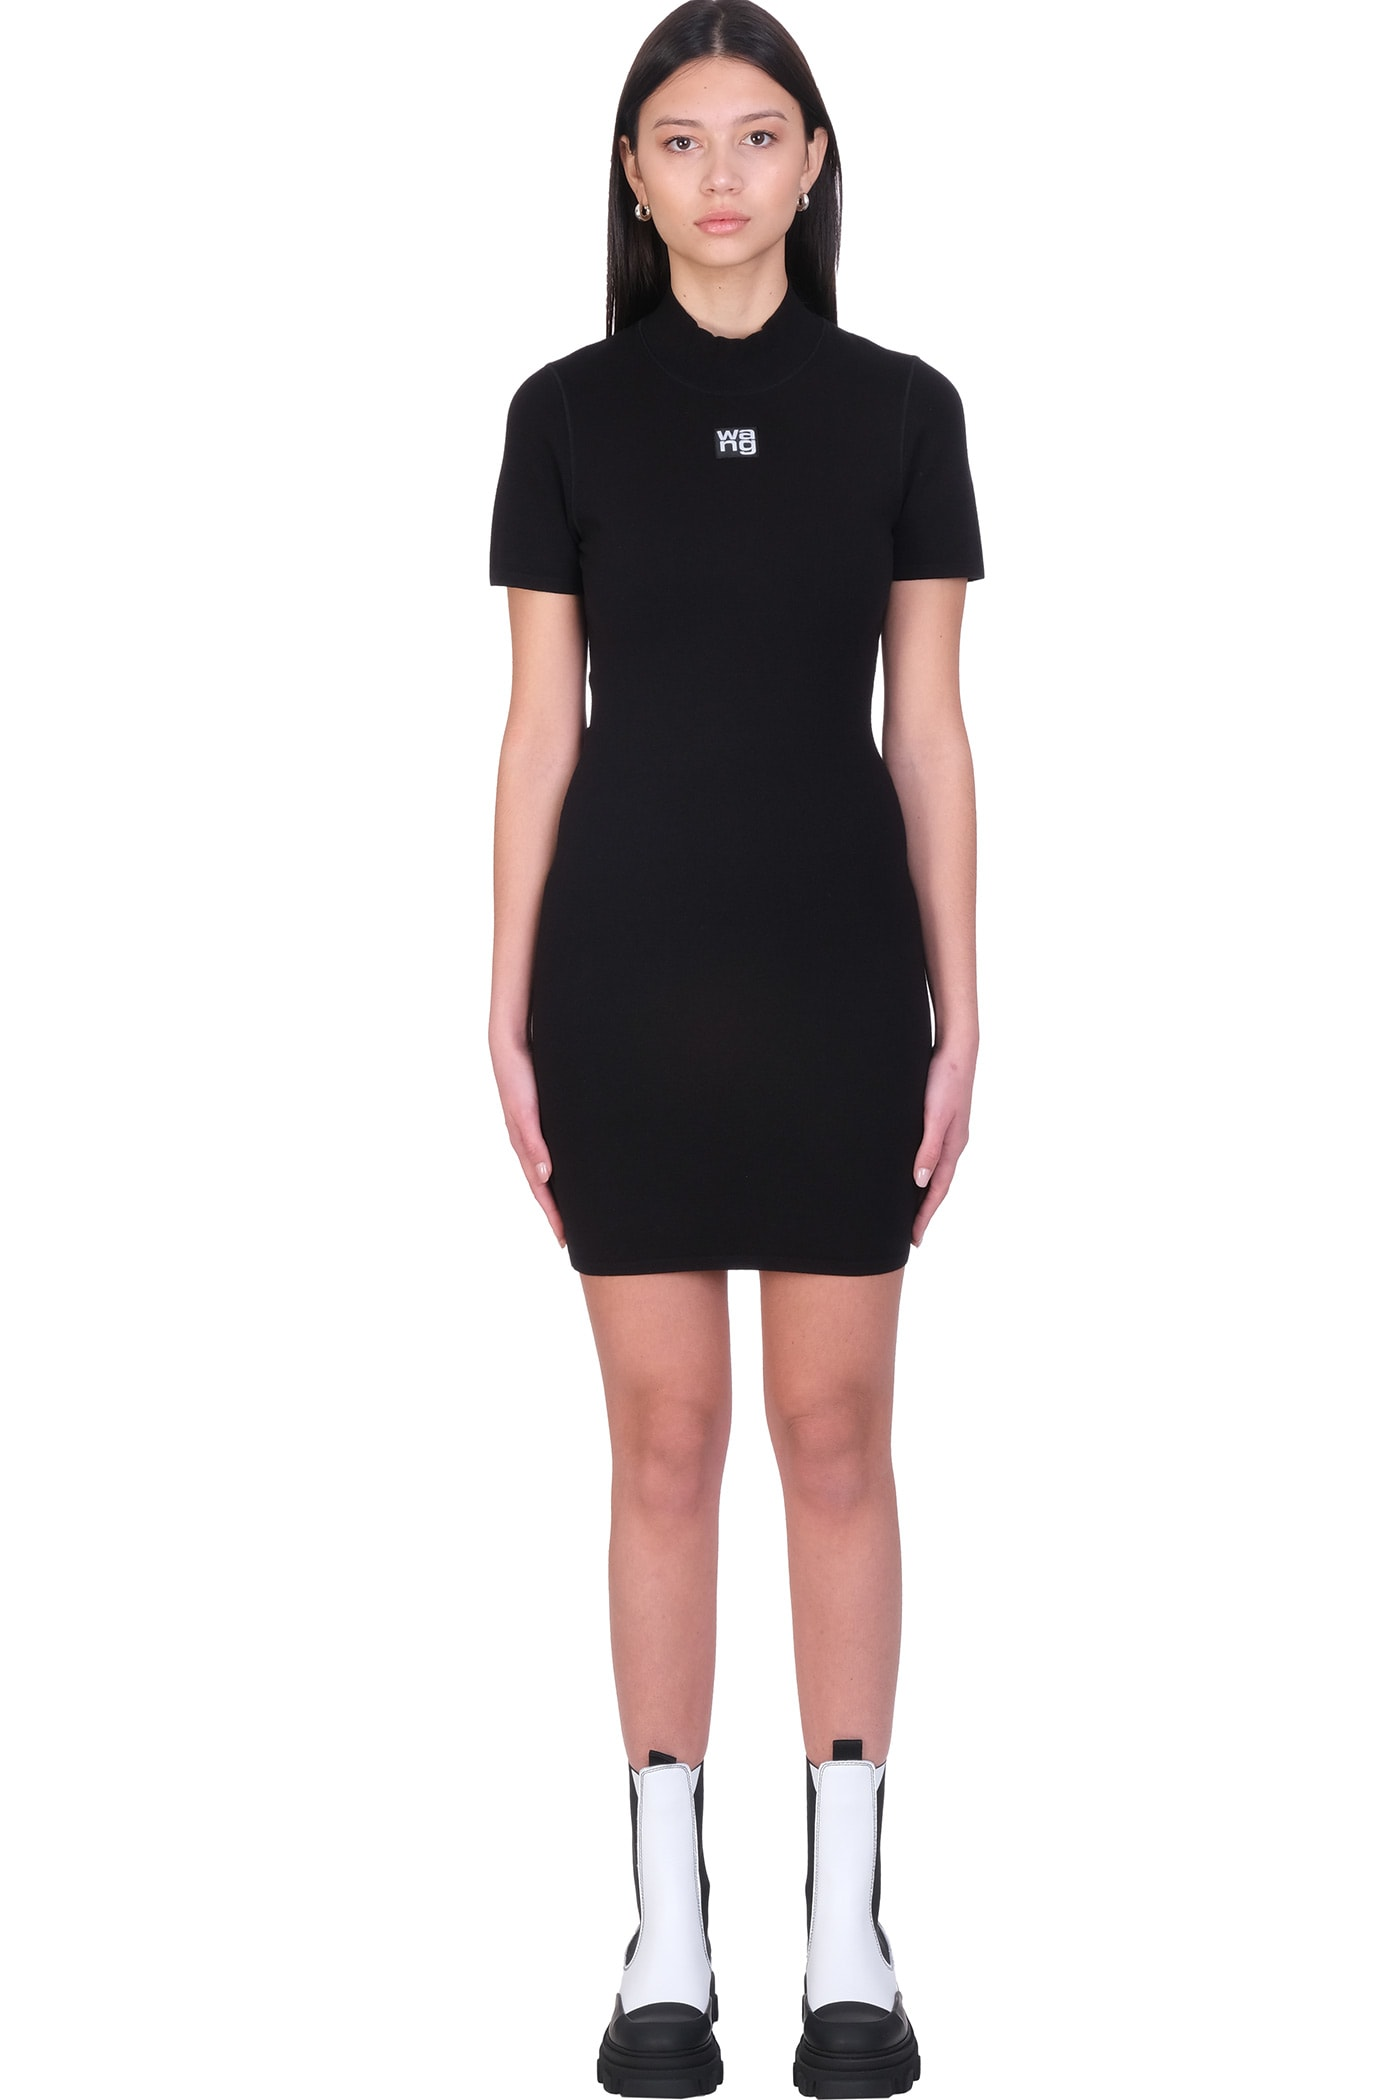 Alexander Wang Dress In Black Synthetic Fibers